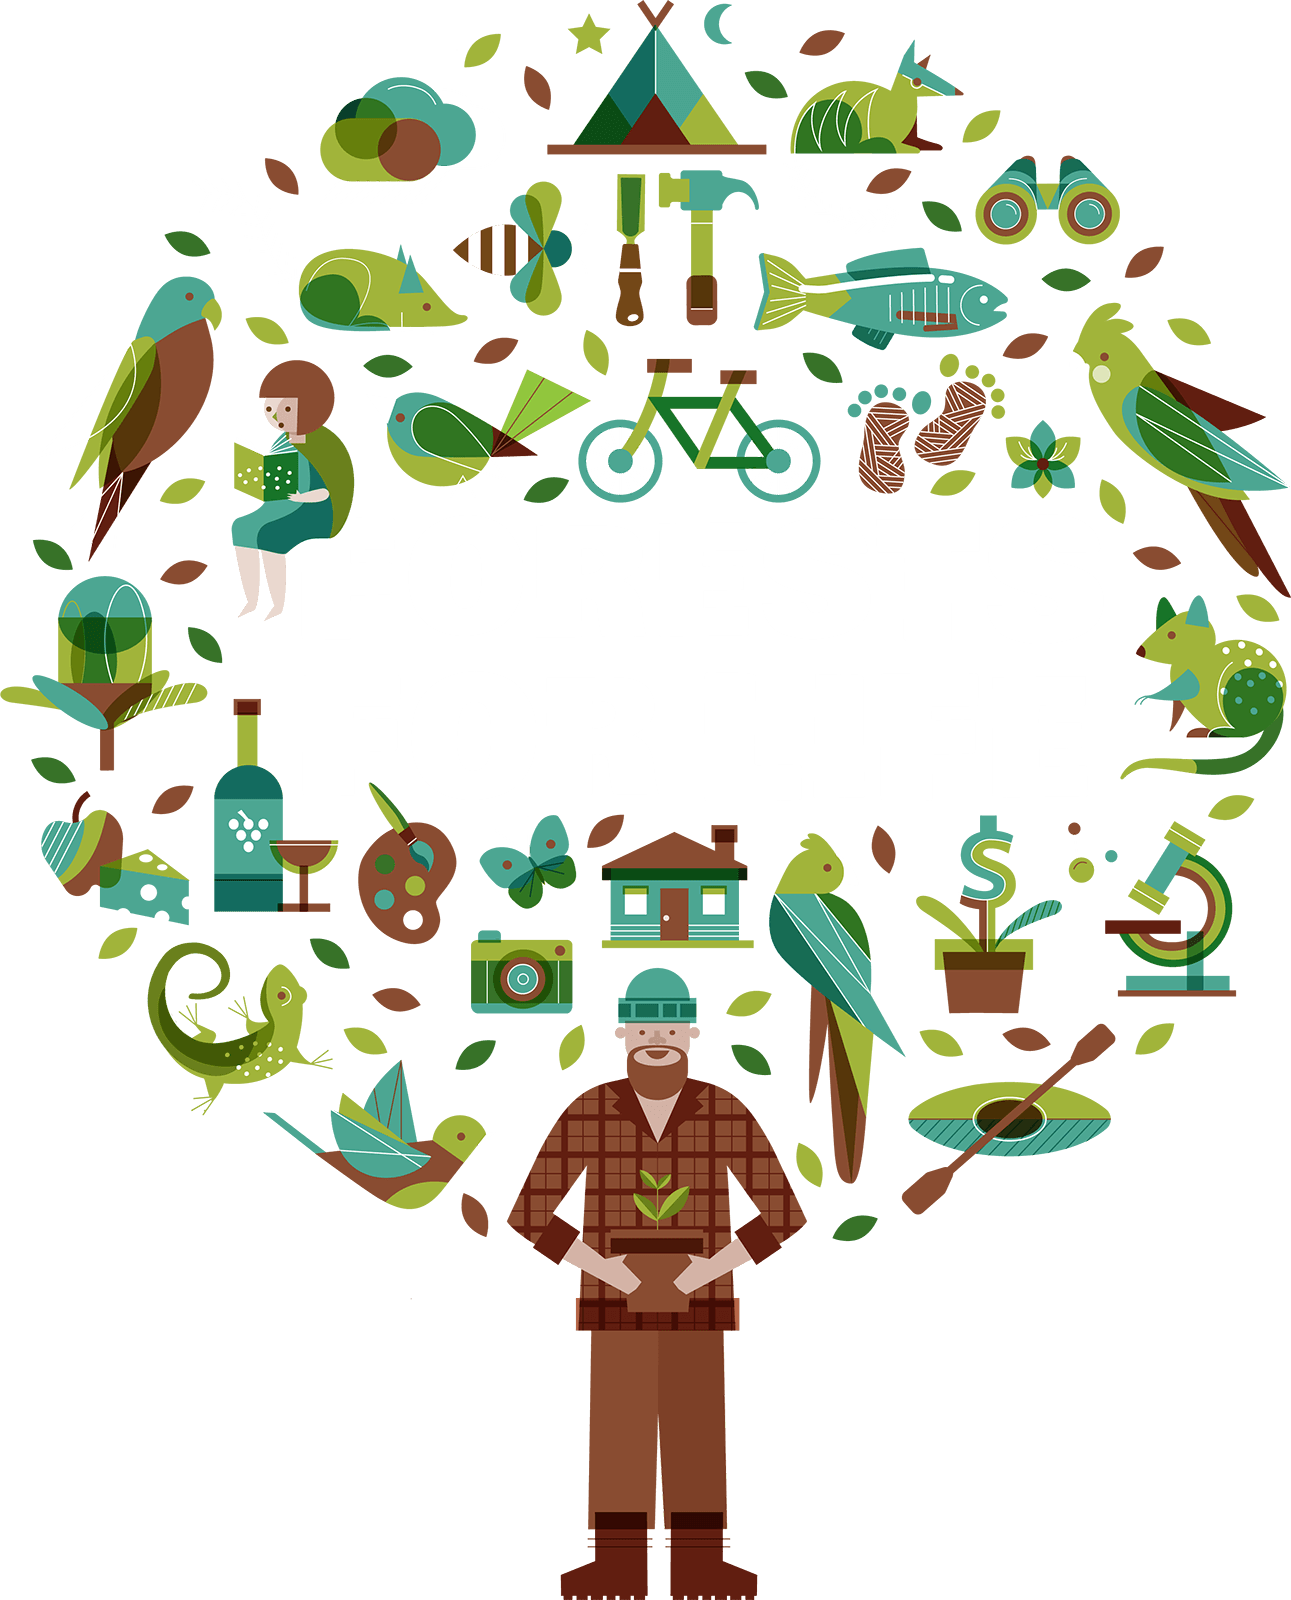 Forests for life